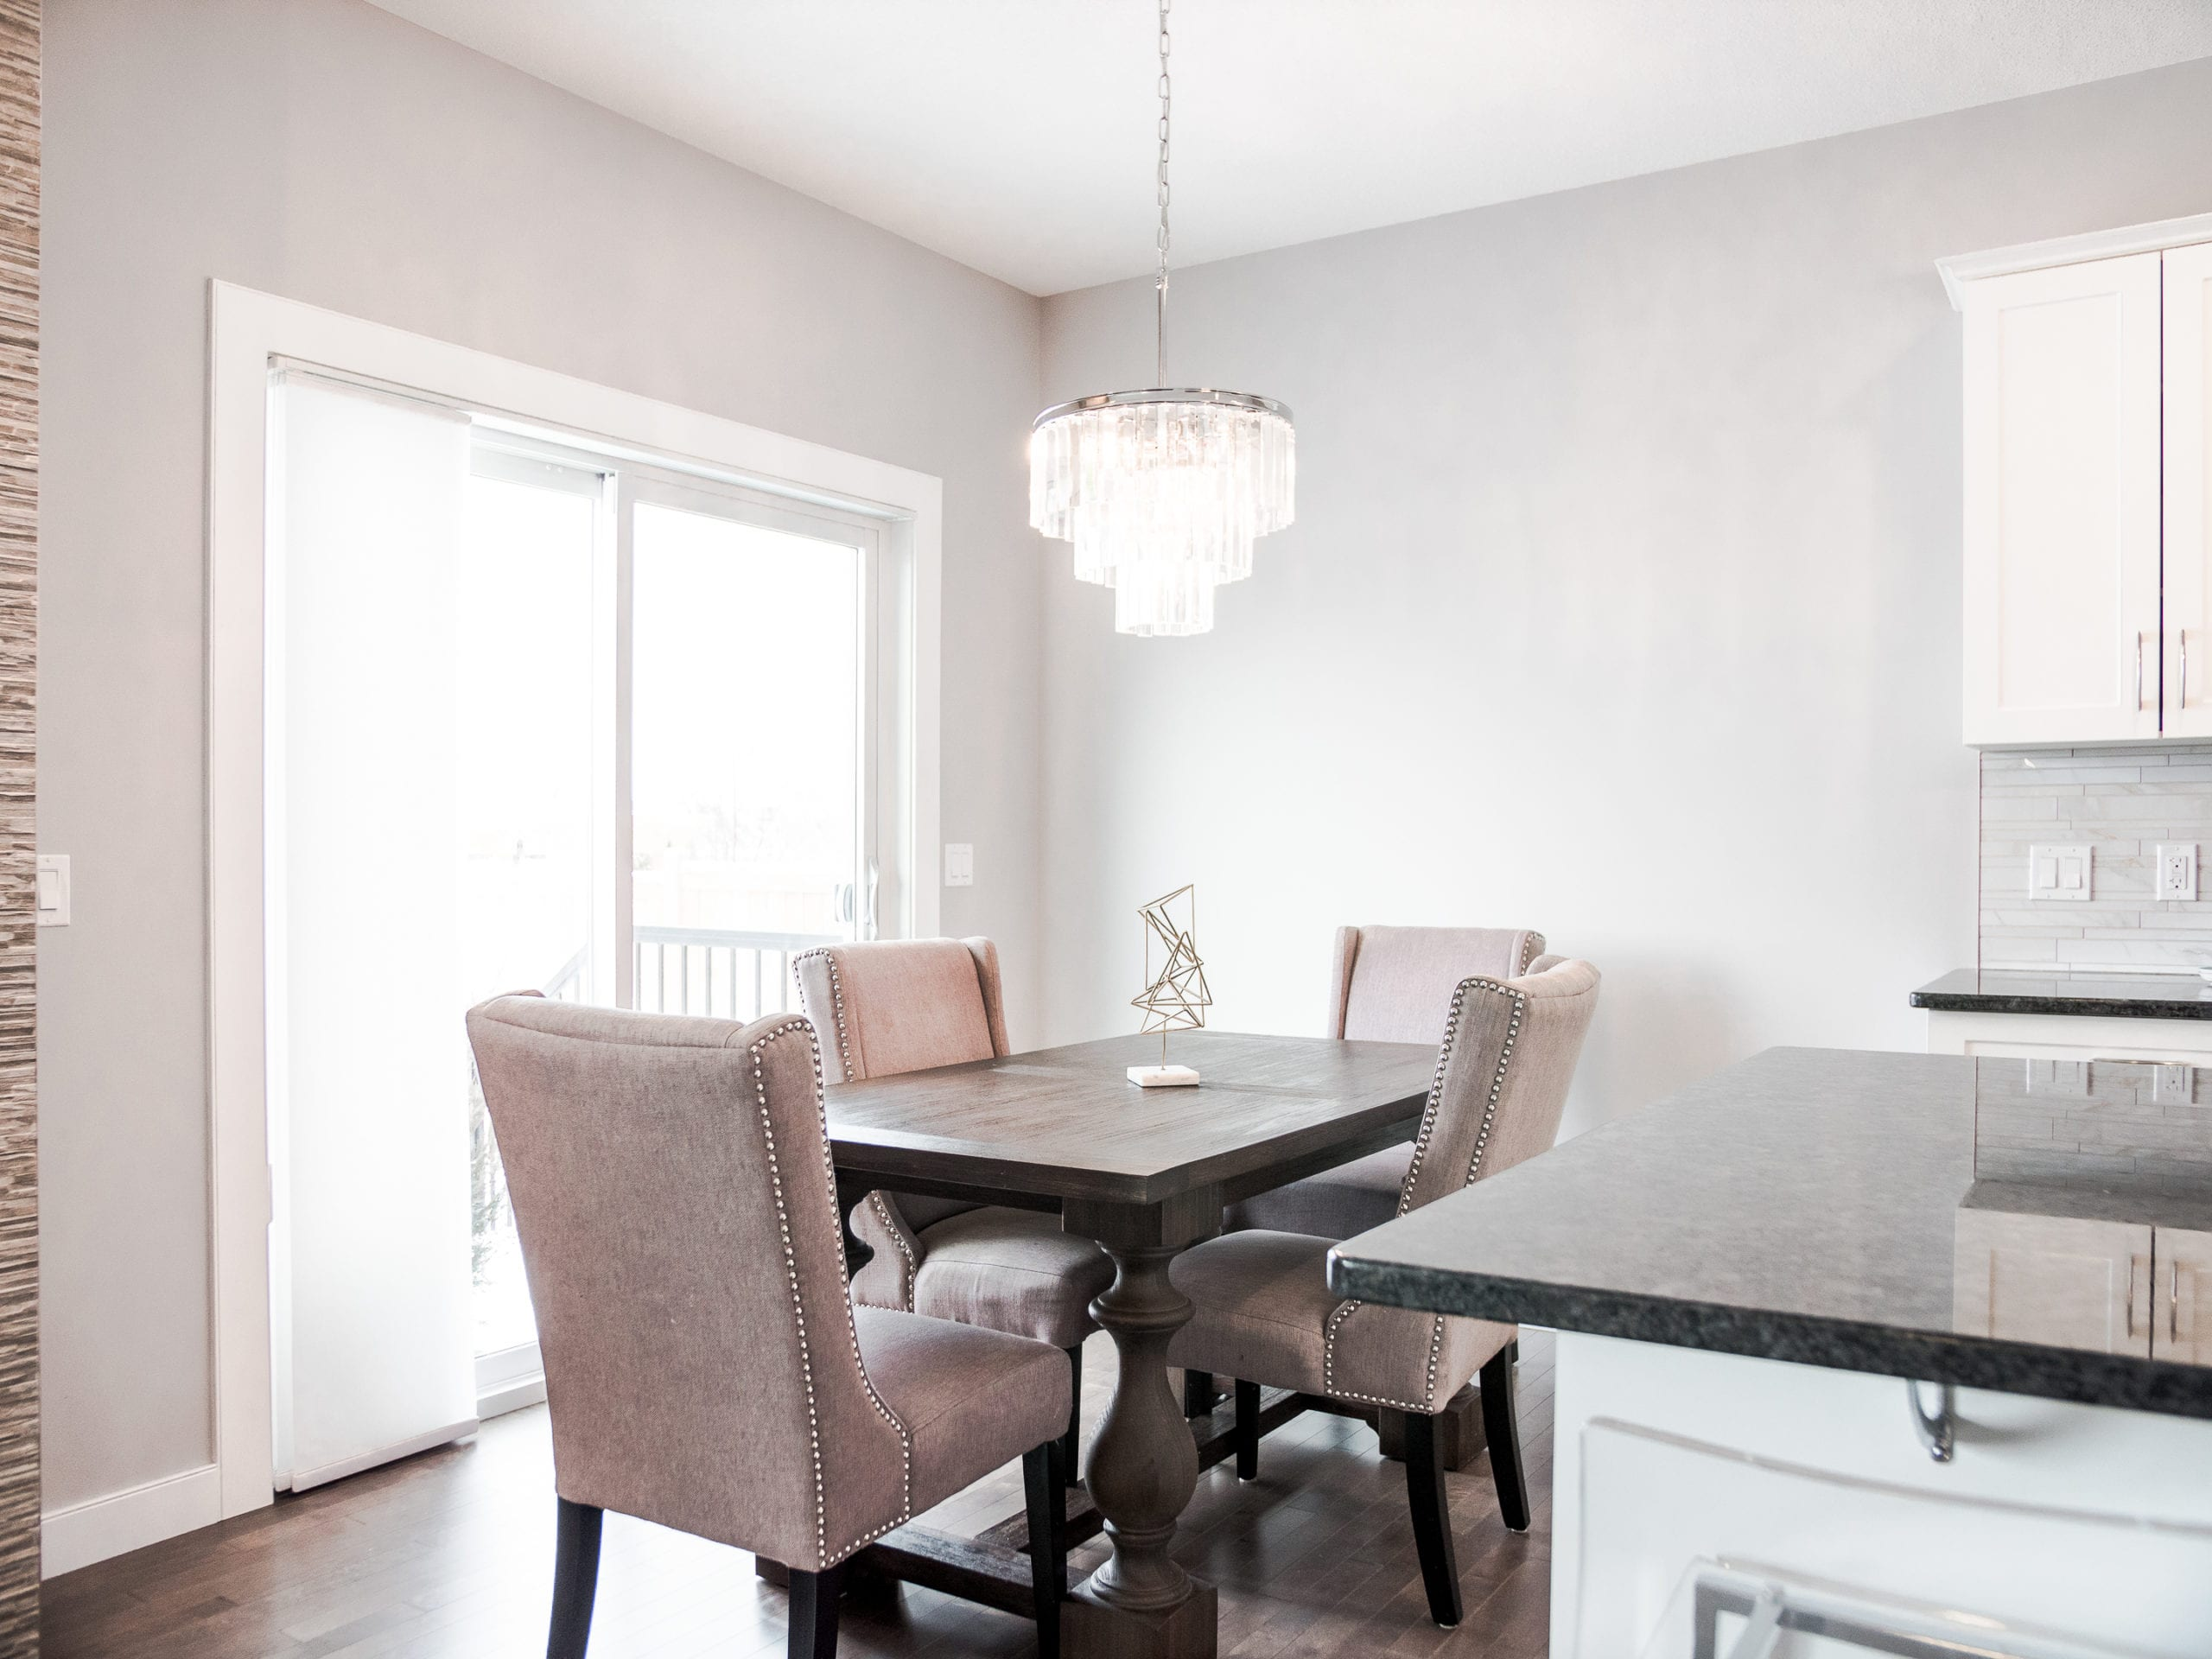 Hello Gorgeous - 1306 Kings Heights Way SE, Airdrie AB. - Tara Molina Real Estate (8 of 53)